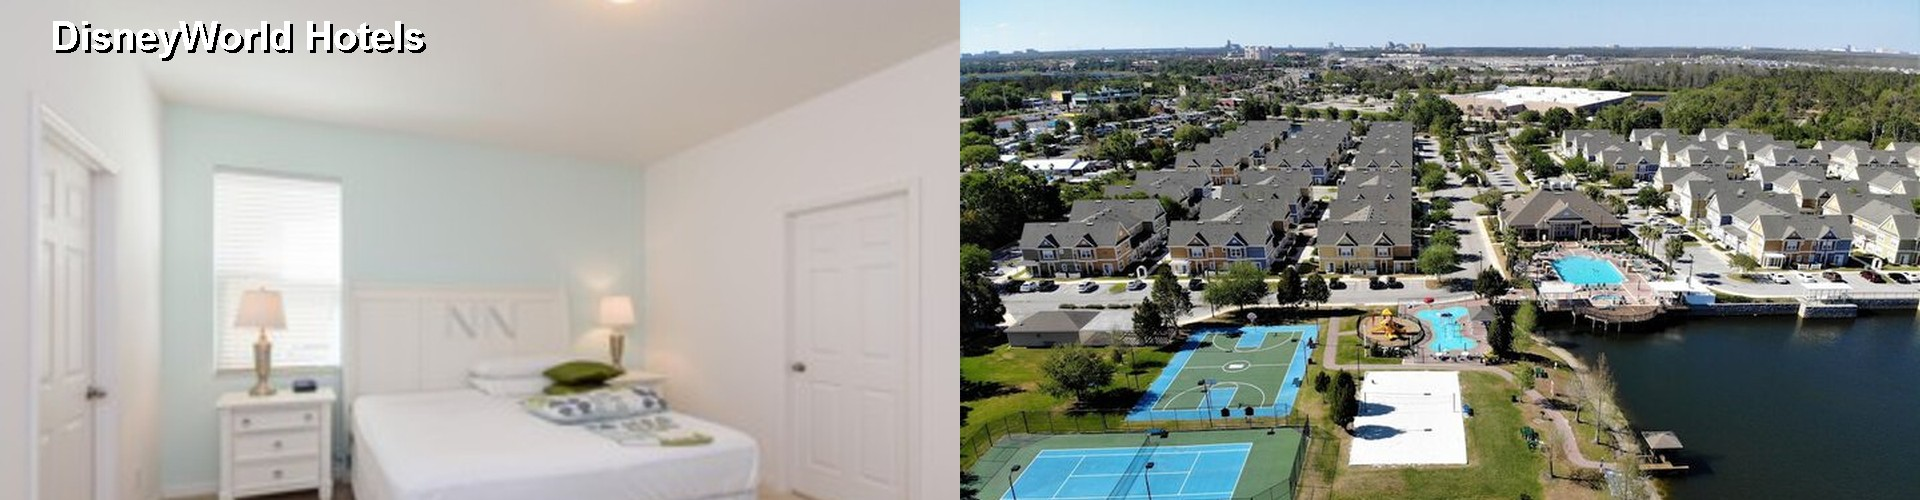 41 hotels near disneyworld in orlando fl